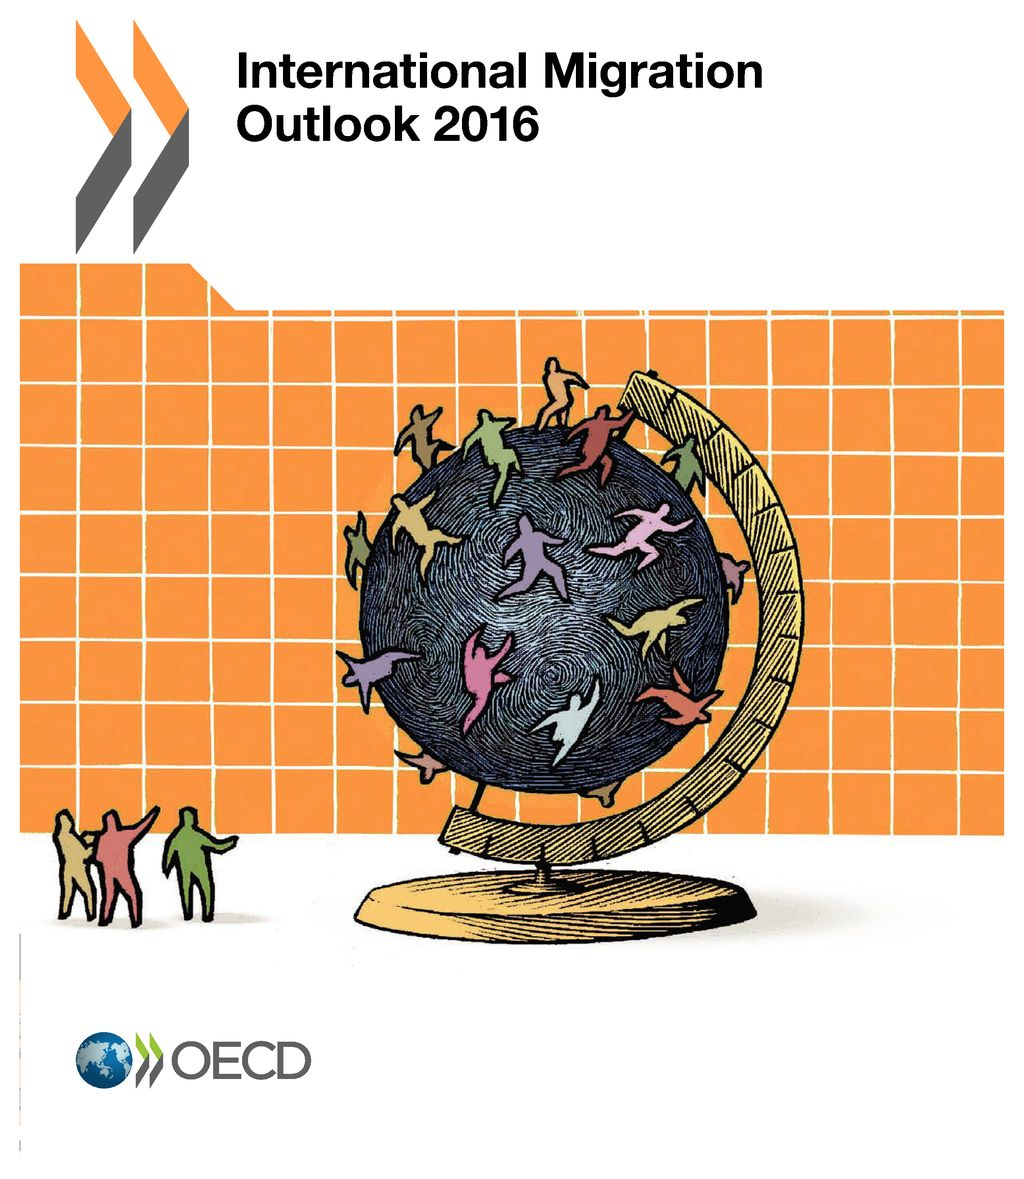 International Migration Outlook 2016